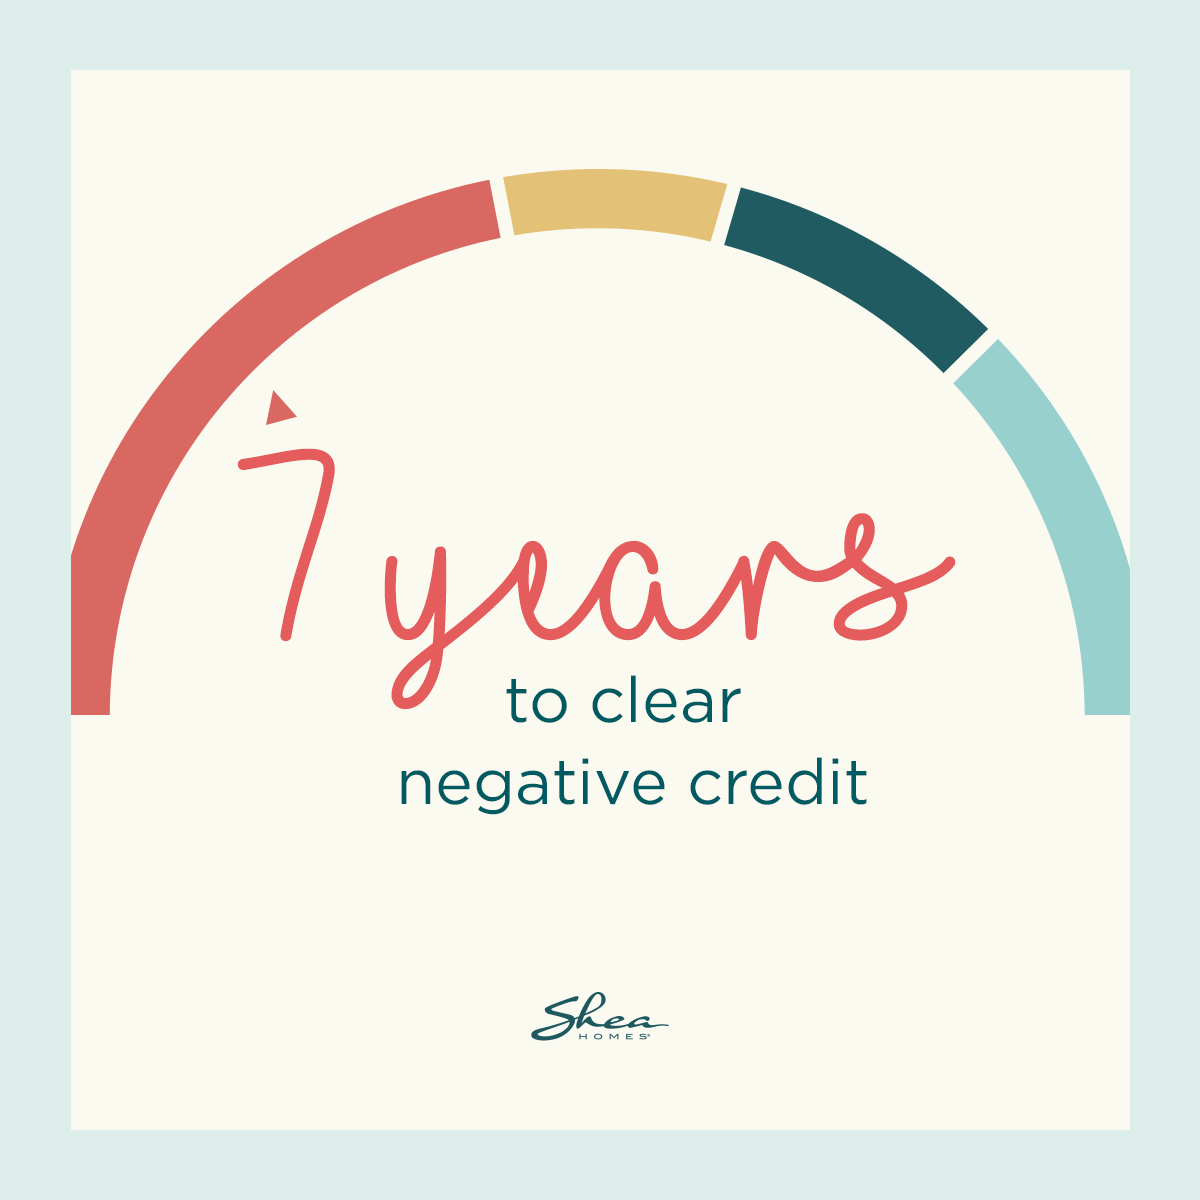 7 years to clear negative credit